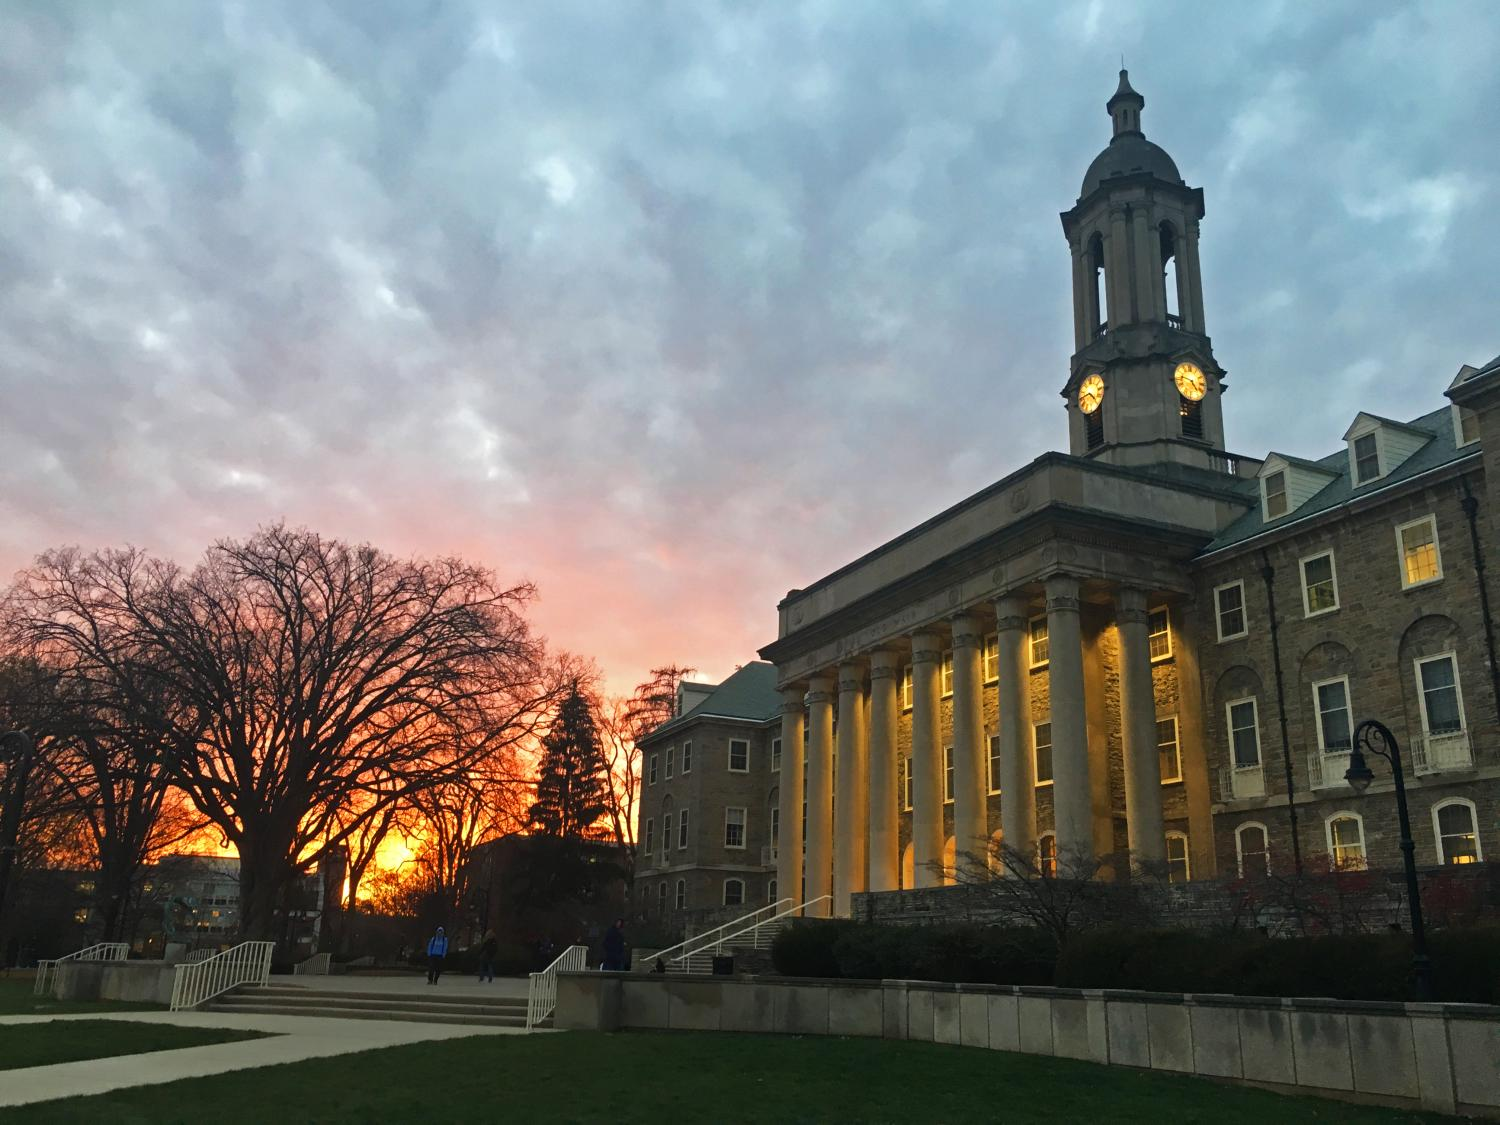 Penn State's Old Main building at sunset.